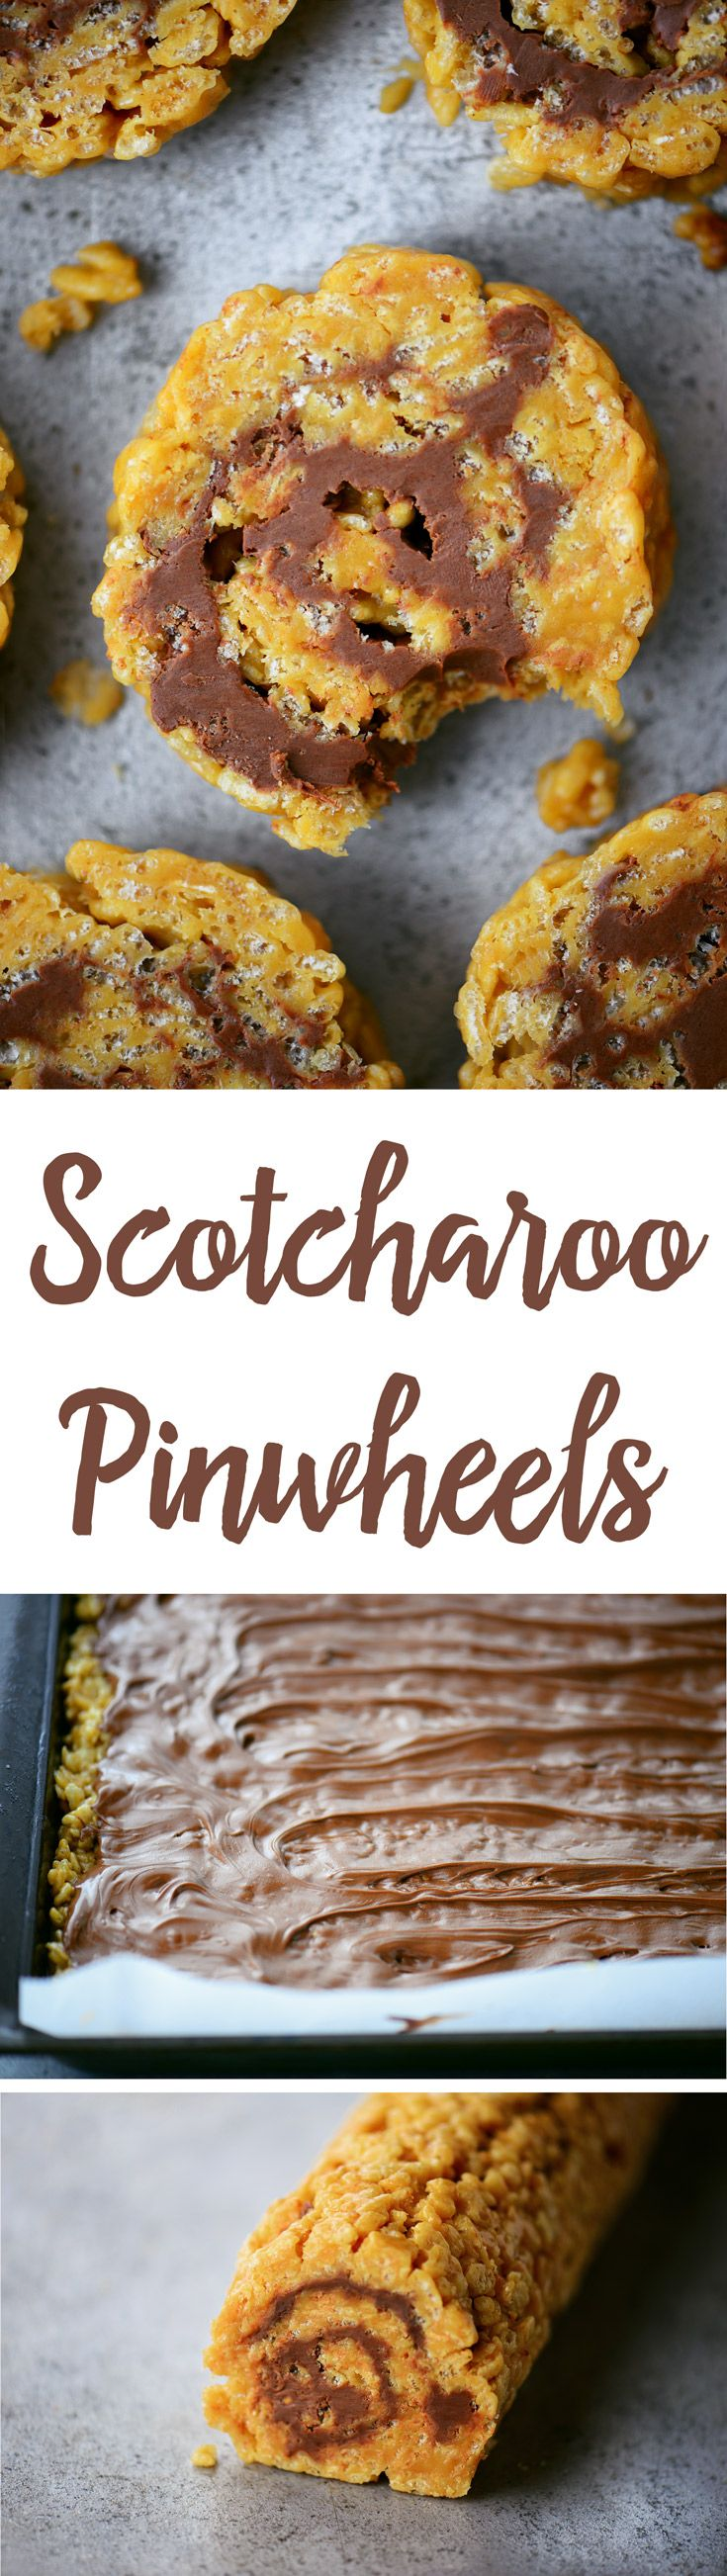 These Scotcharoos Pinwheels are a new spin on a classic favorite. The chewy, crispy peanut butter bars rolled up with the chocolate and butterscotch frosting will be hit at your summer picnics and cookouts!